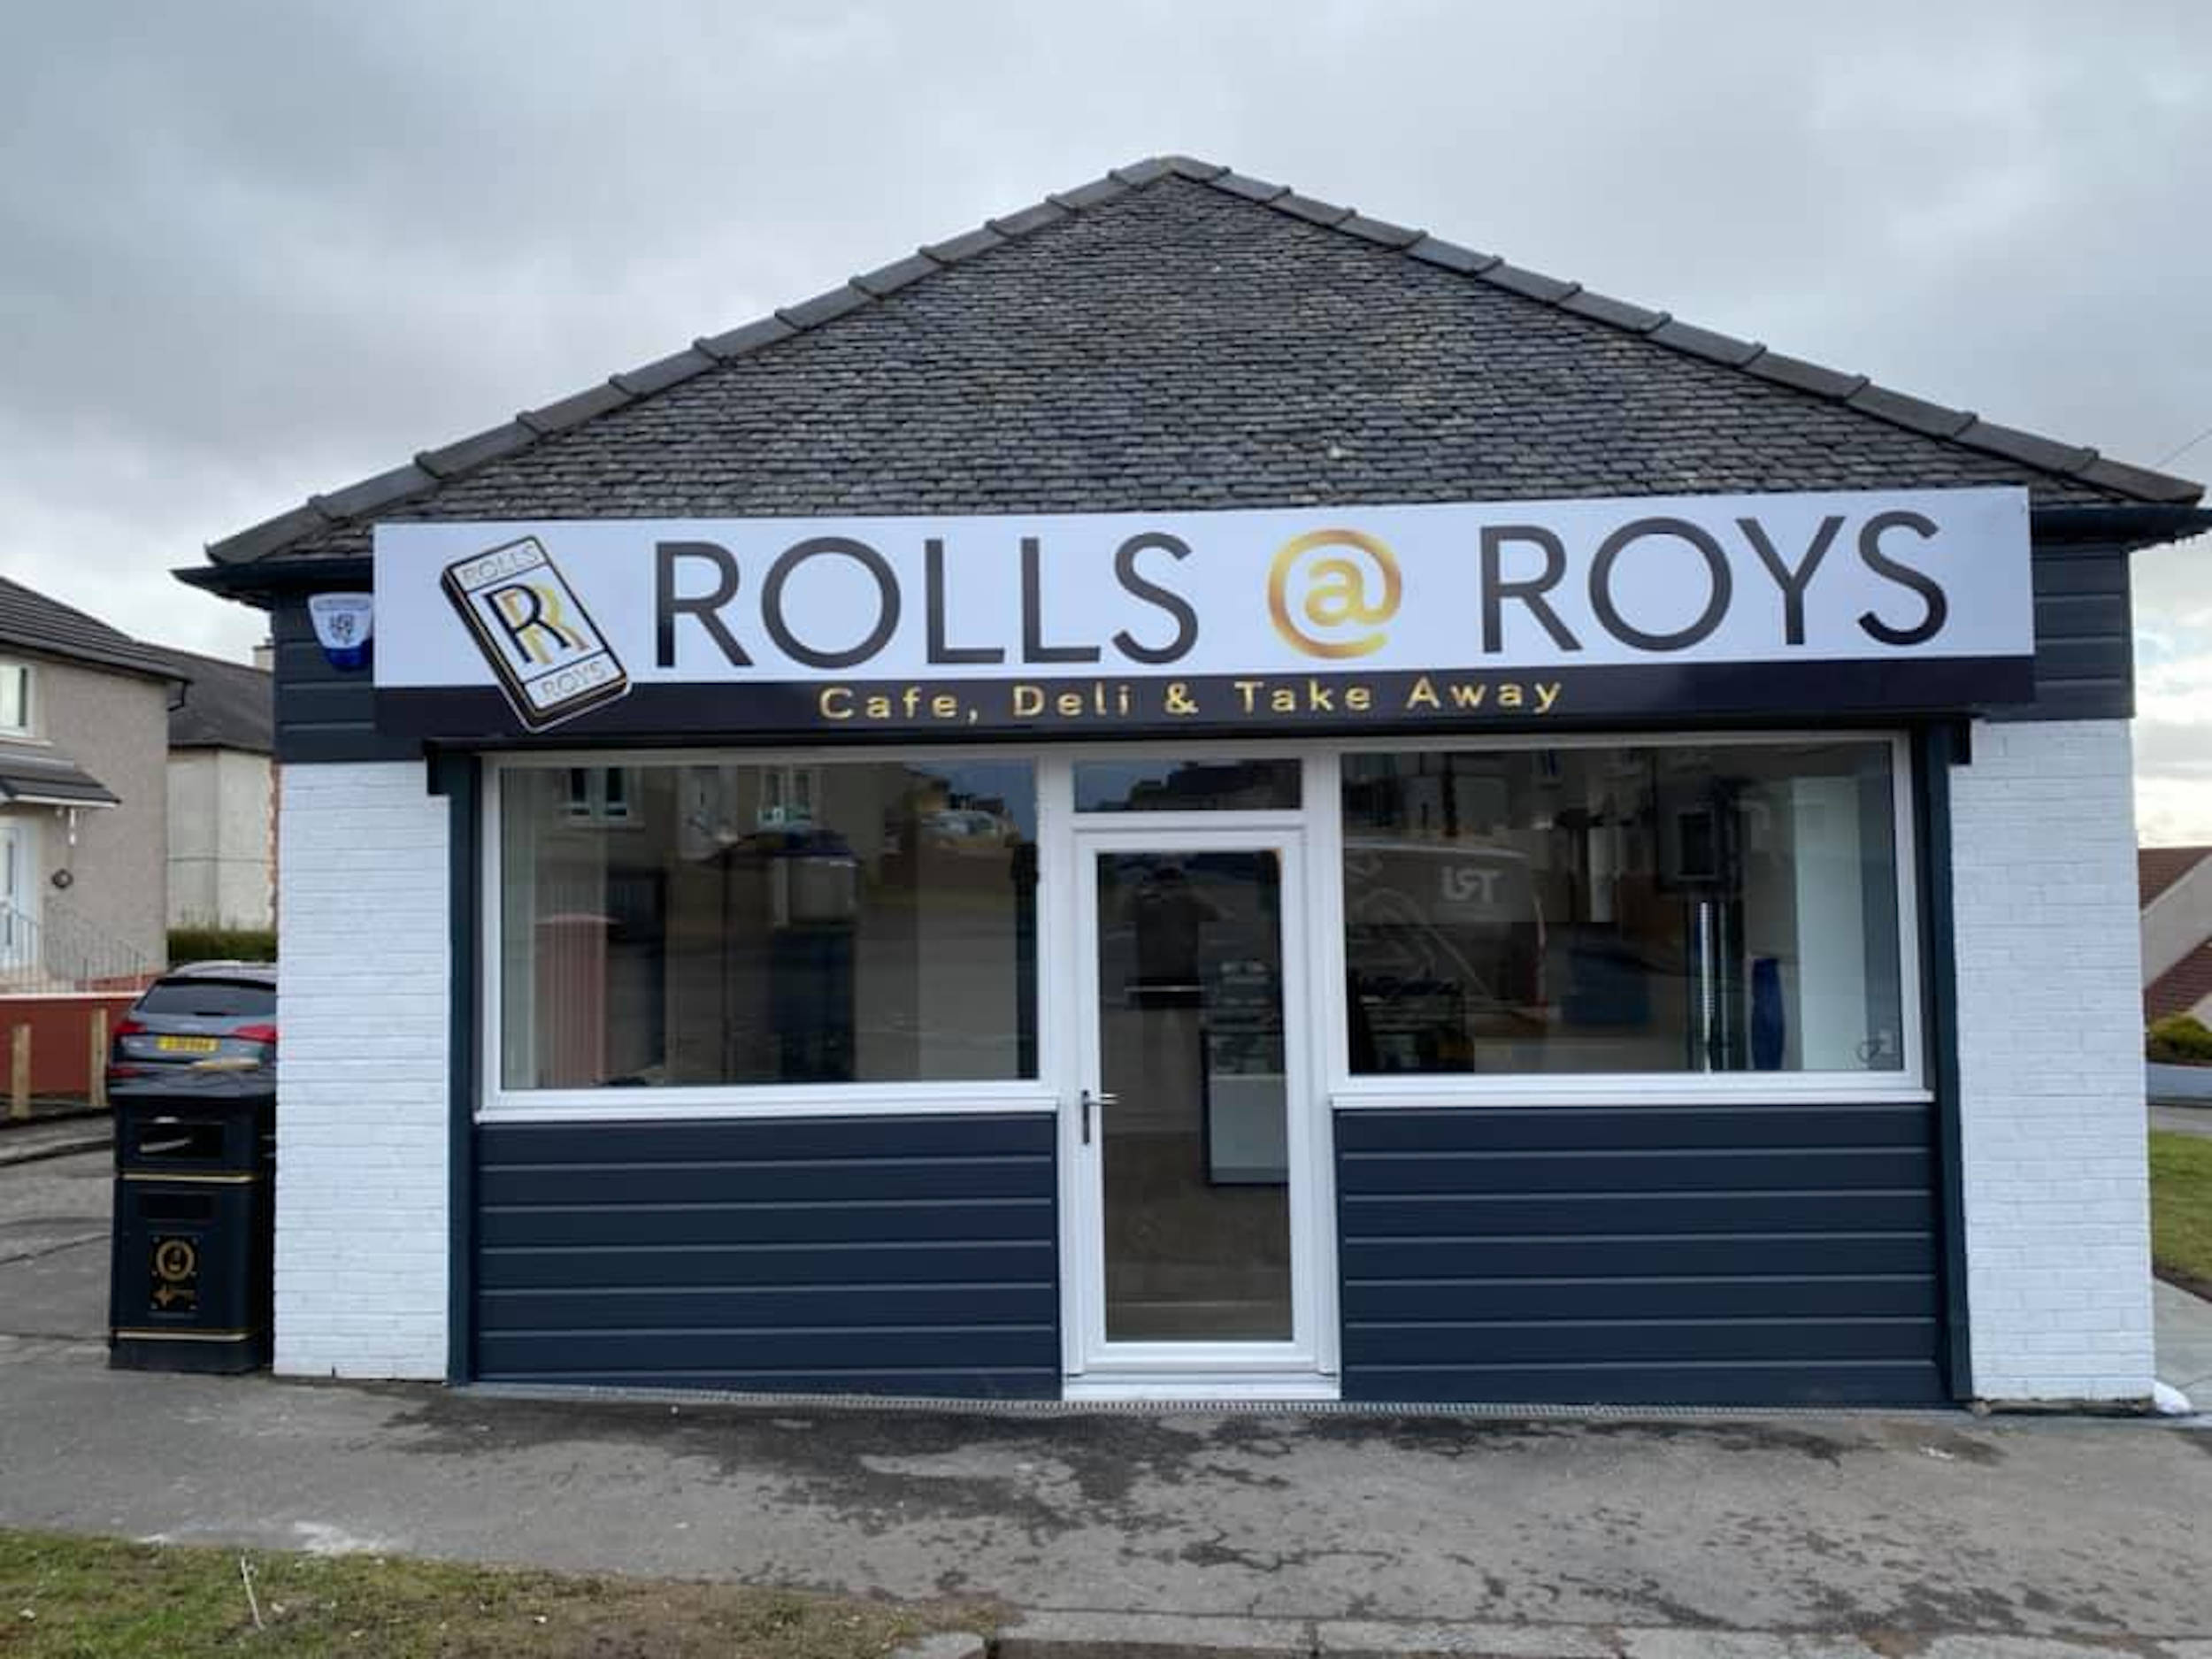 Rolls at Roys - food and drink news Scotland